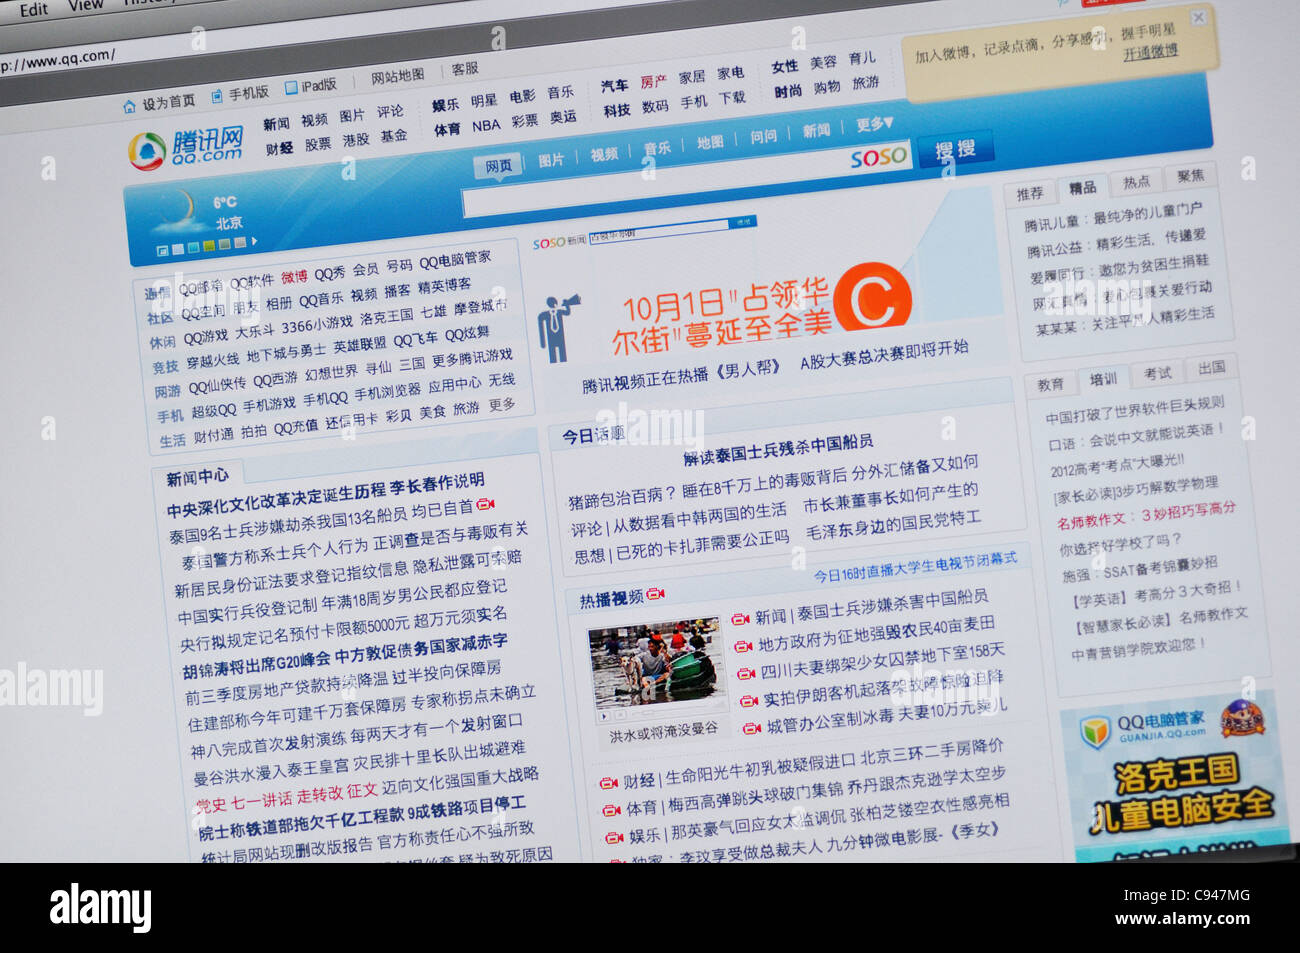 Qq Chinese Online Shopping Website Stock Photo Alamy